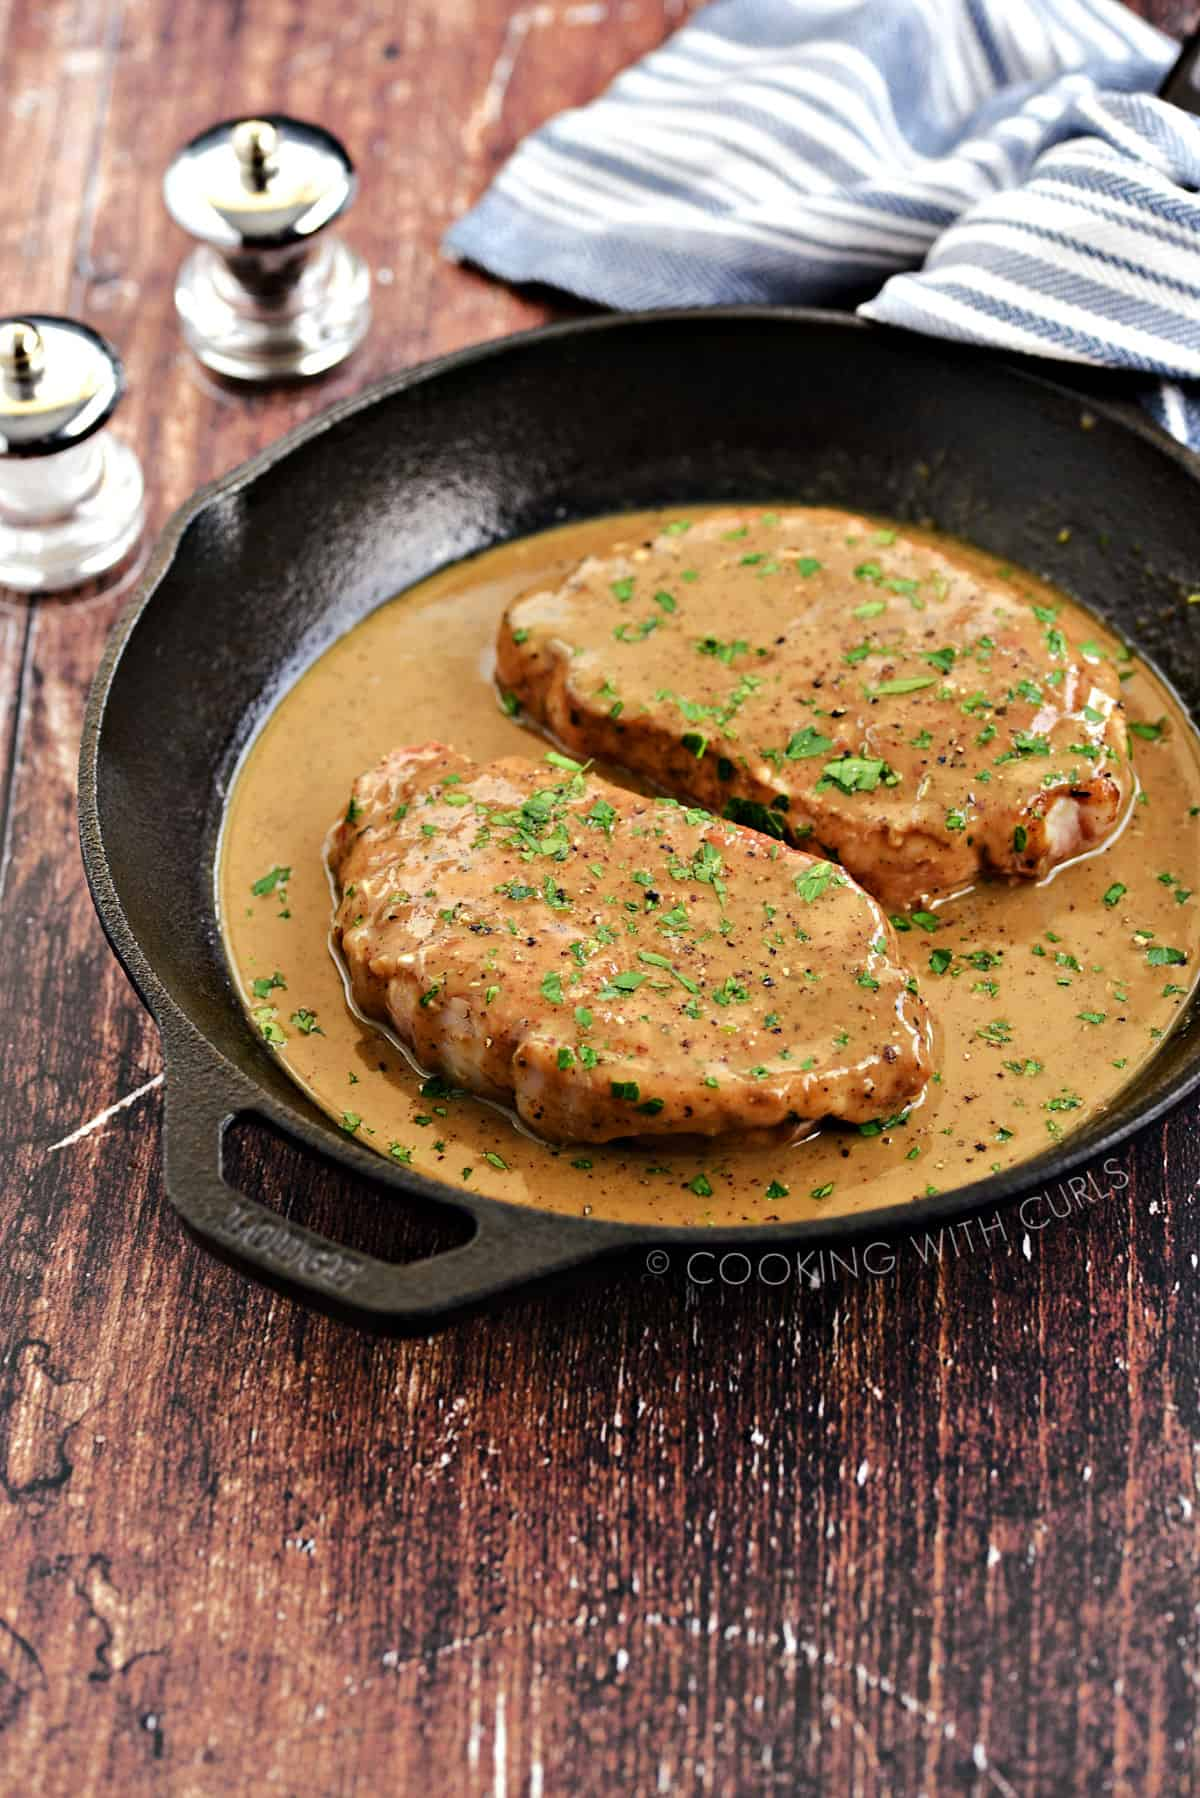 Two pork chops smothered with brown pan gravy in a cast iron skillet.